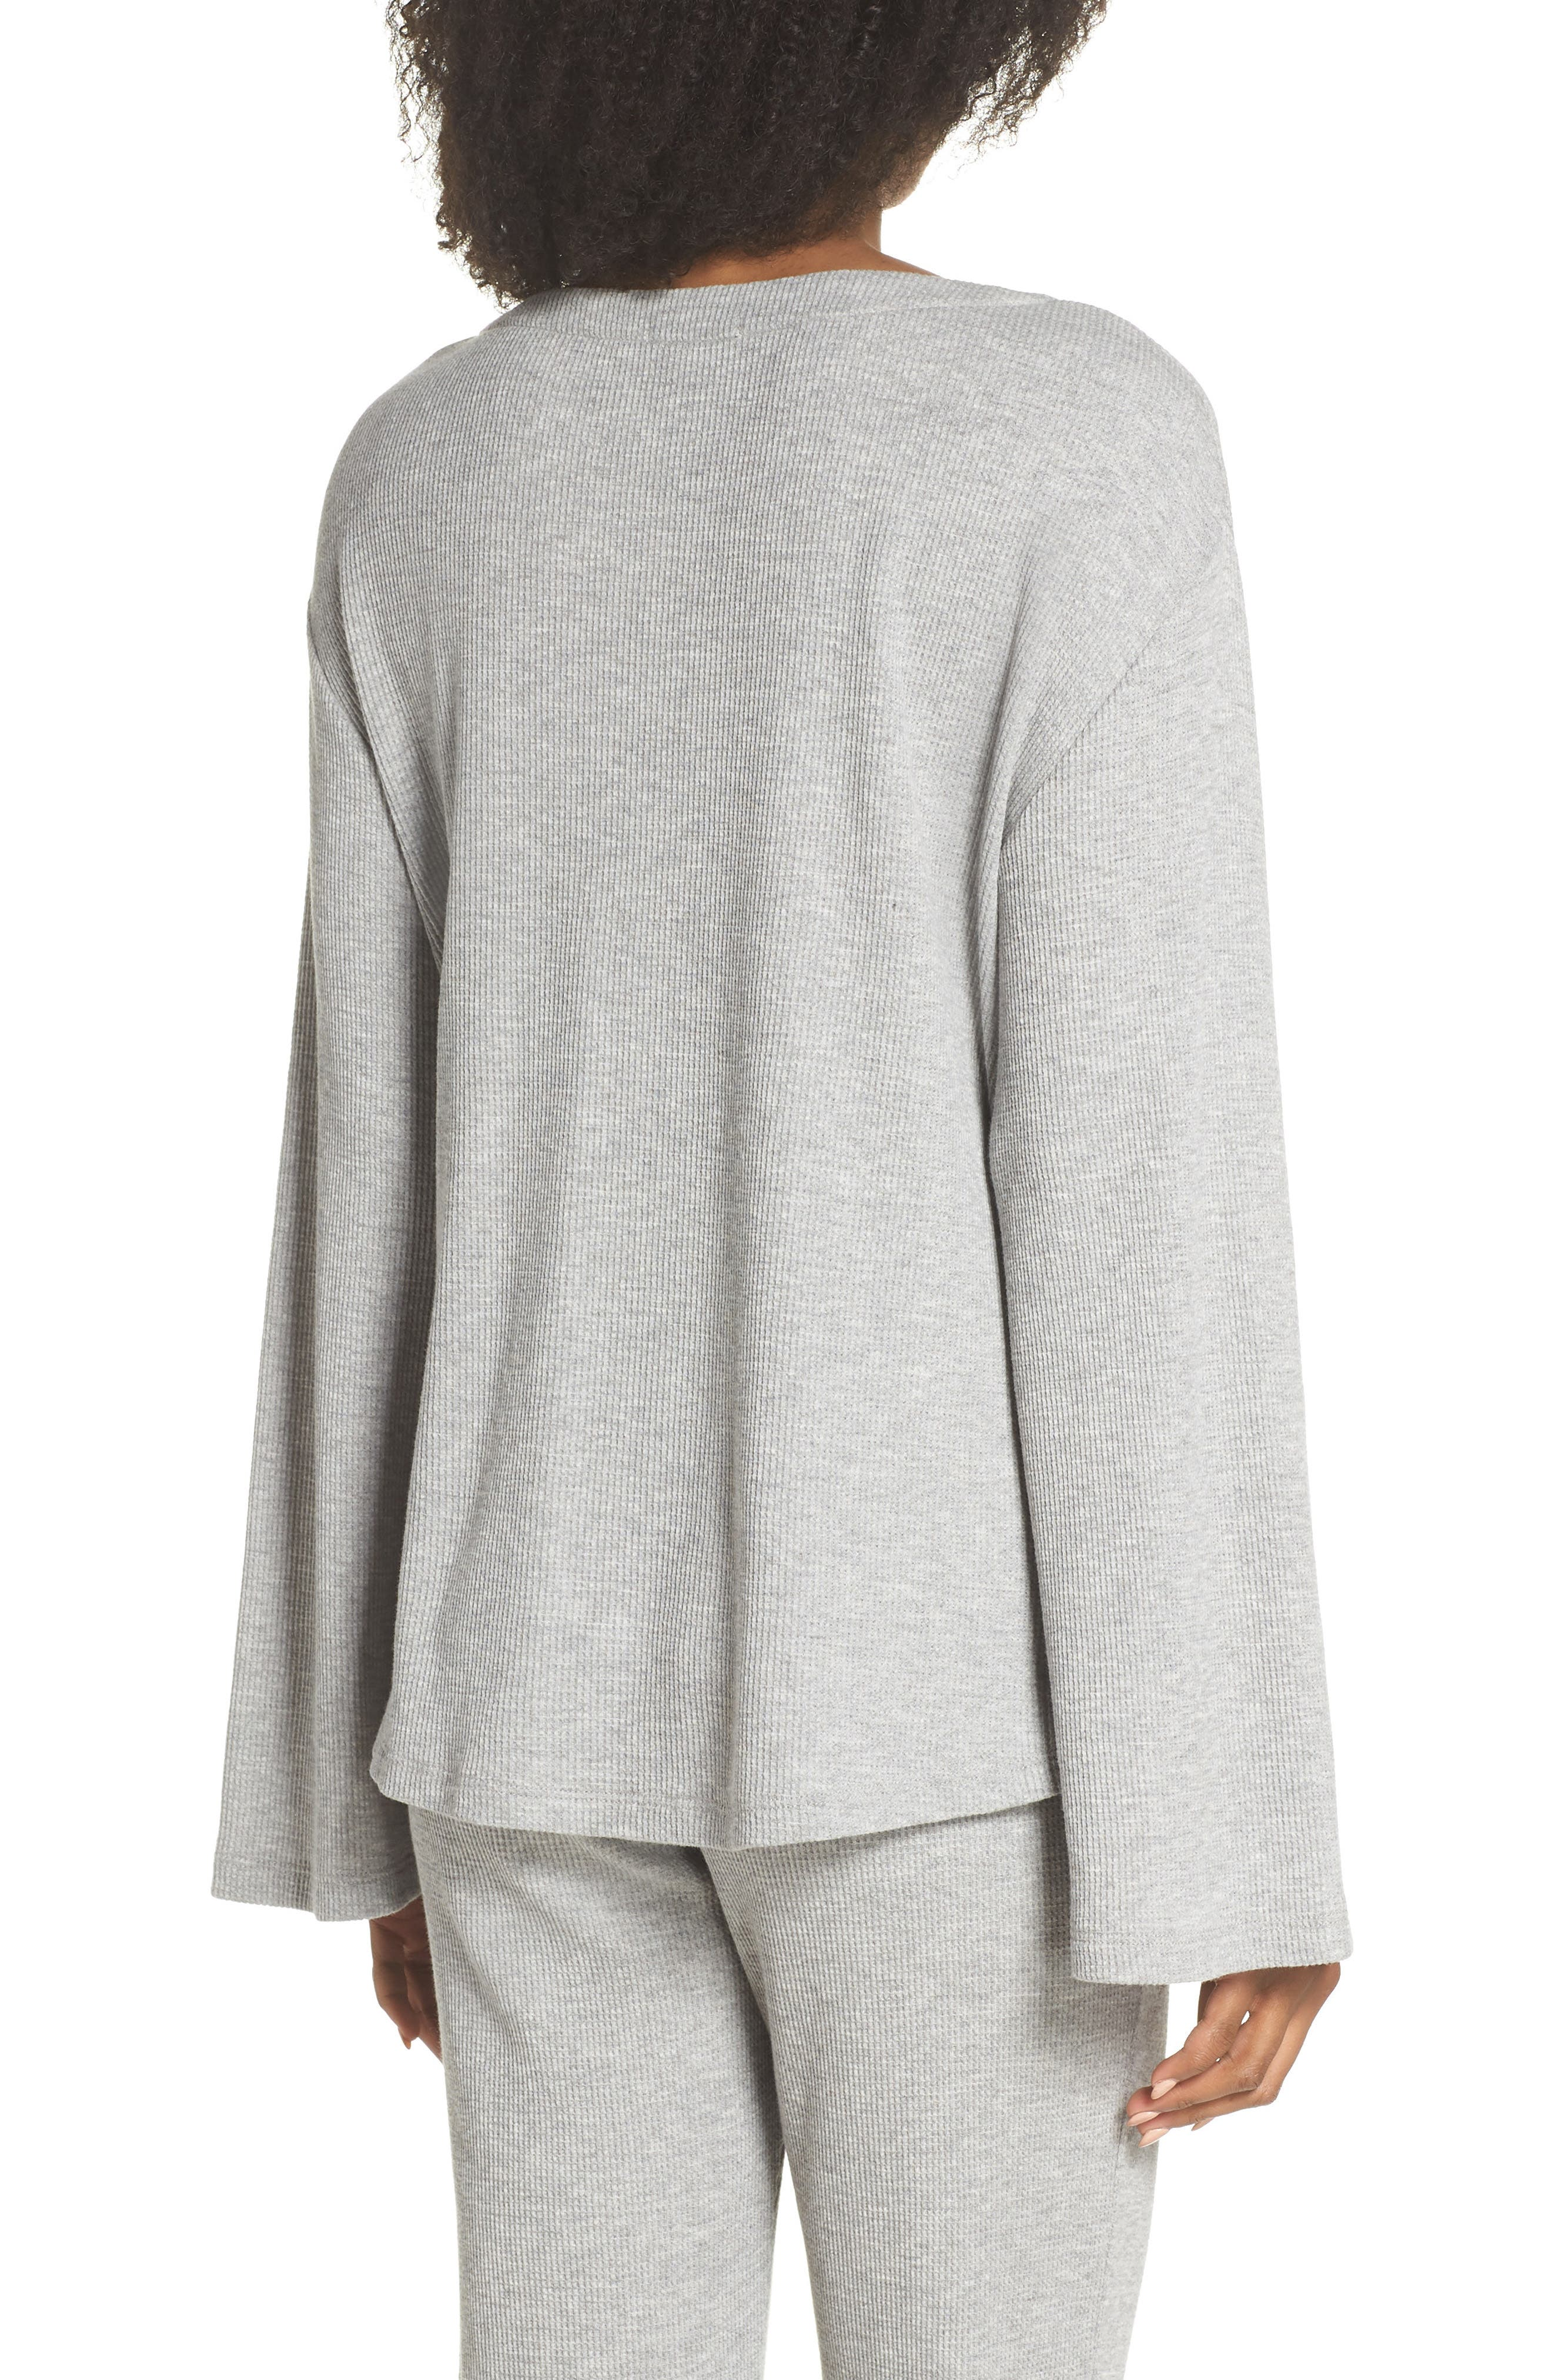 Elyse Lace-Up Waffle Knit Sleep Top,                             Alternate thumbnail 2, color,                             Heather Grey